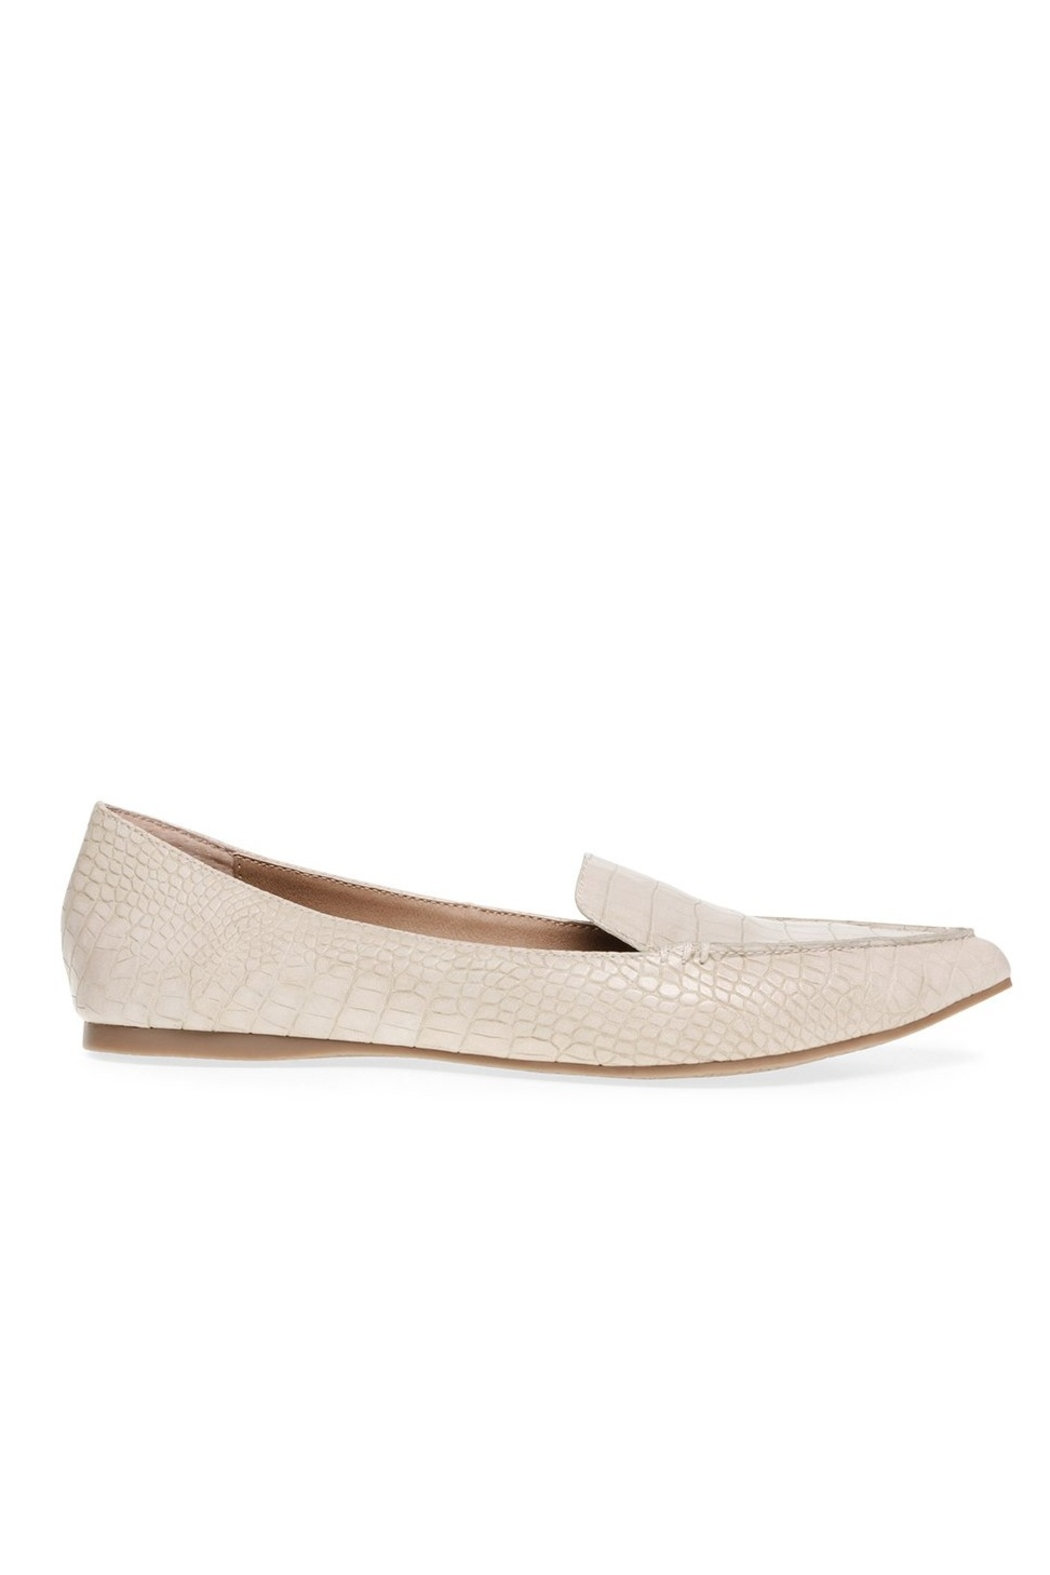 Steve Madden Feather Pointed Flat - Back Cropped Image